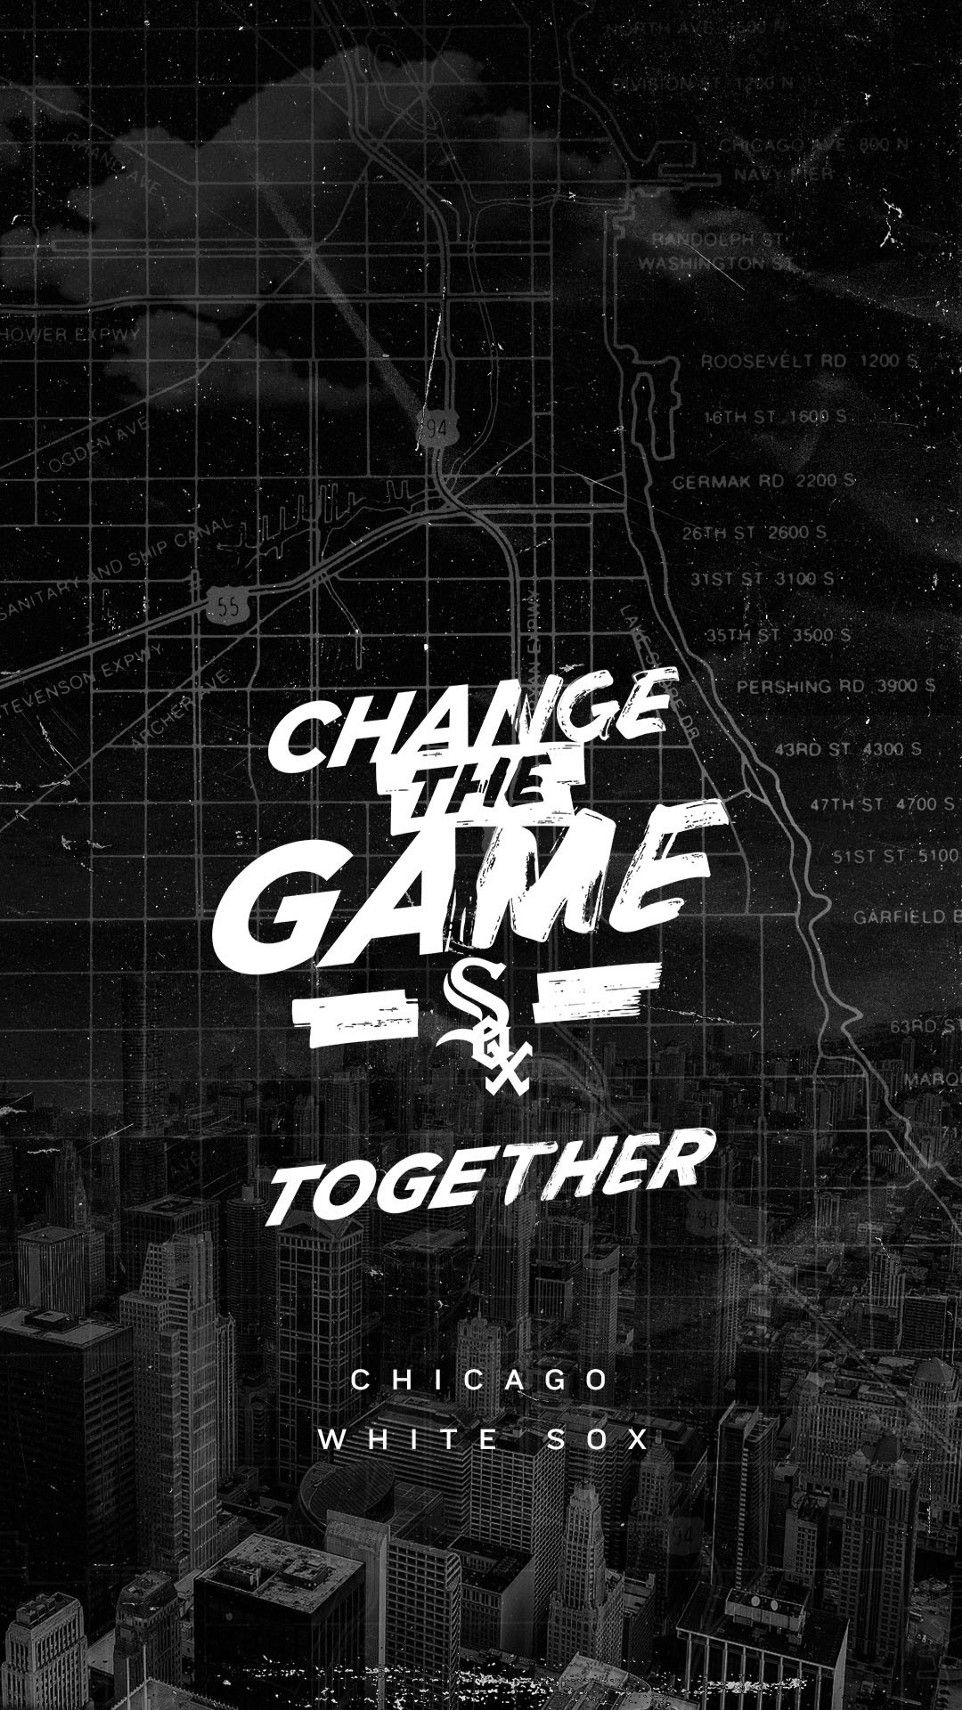 Wallpaper Wednesday It S Wallpaper Wednesday Looking For A By Chicago White Sox Inside White Sox Wallpaper Chicago White Sox Chicago White Sox Baseball